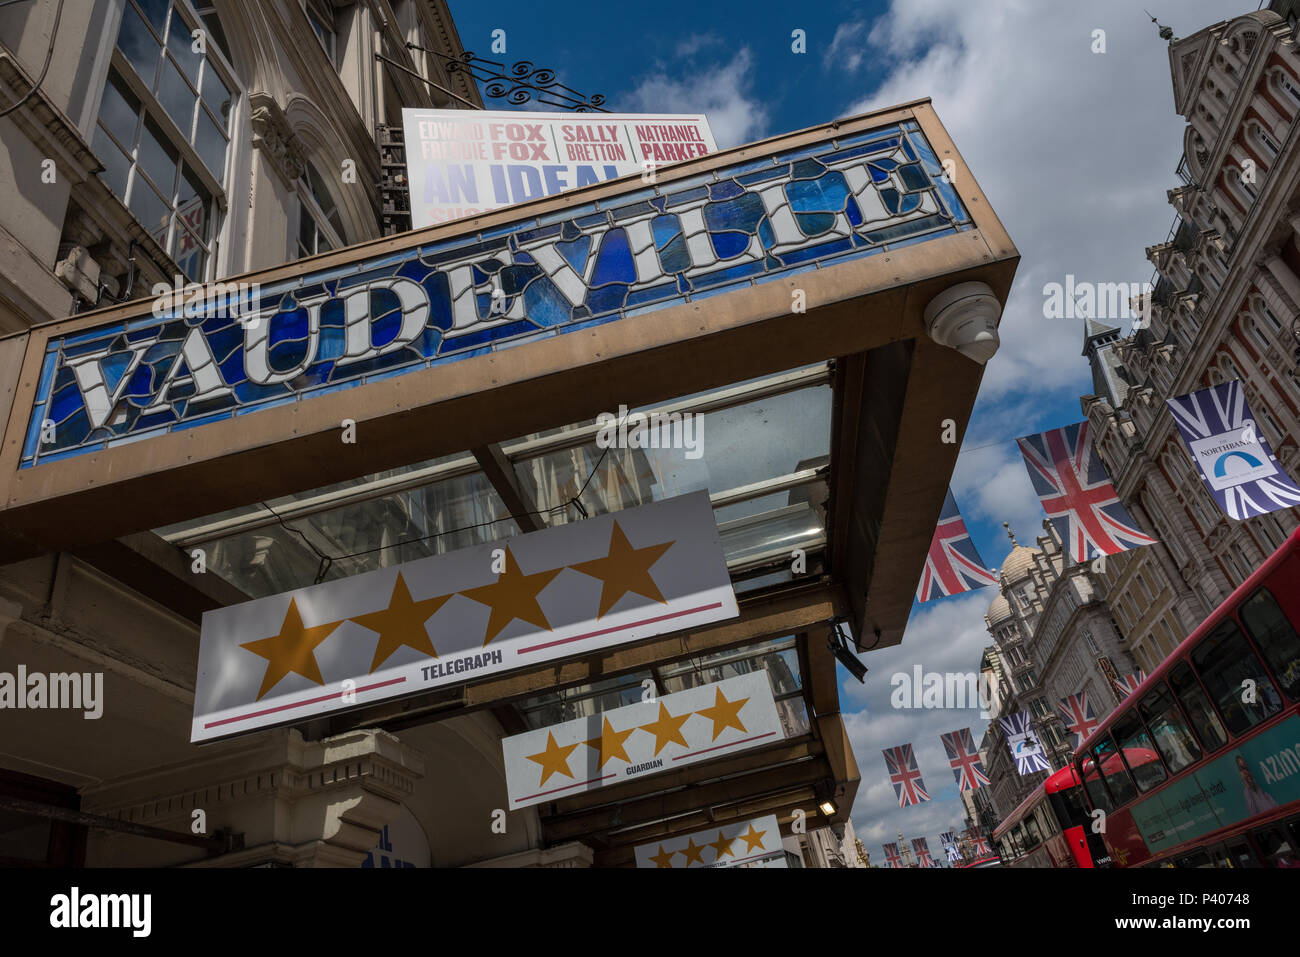 the vaudeville theatre in the strand, central London beneath blue sky and union flags flying across the street. acting and stage productions west end. - Stock Image